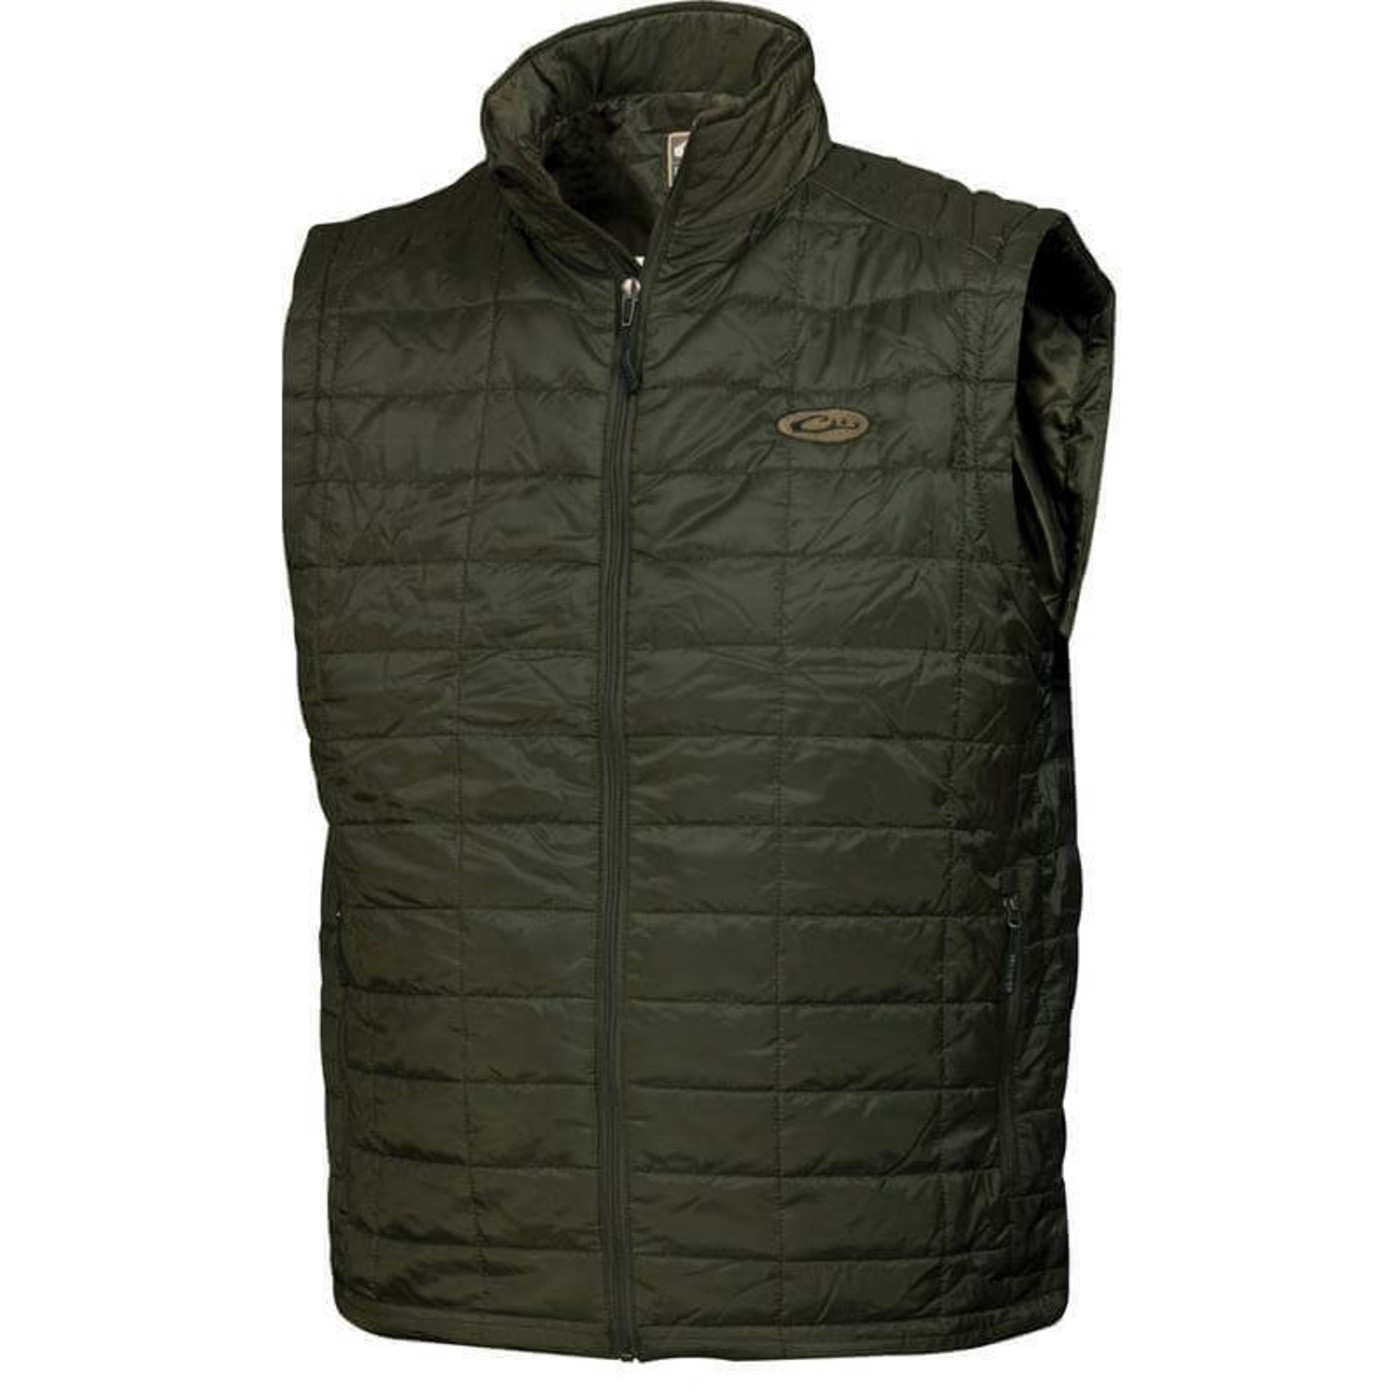 Drake MST Synthetic Down Packable Vest in Olive Color